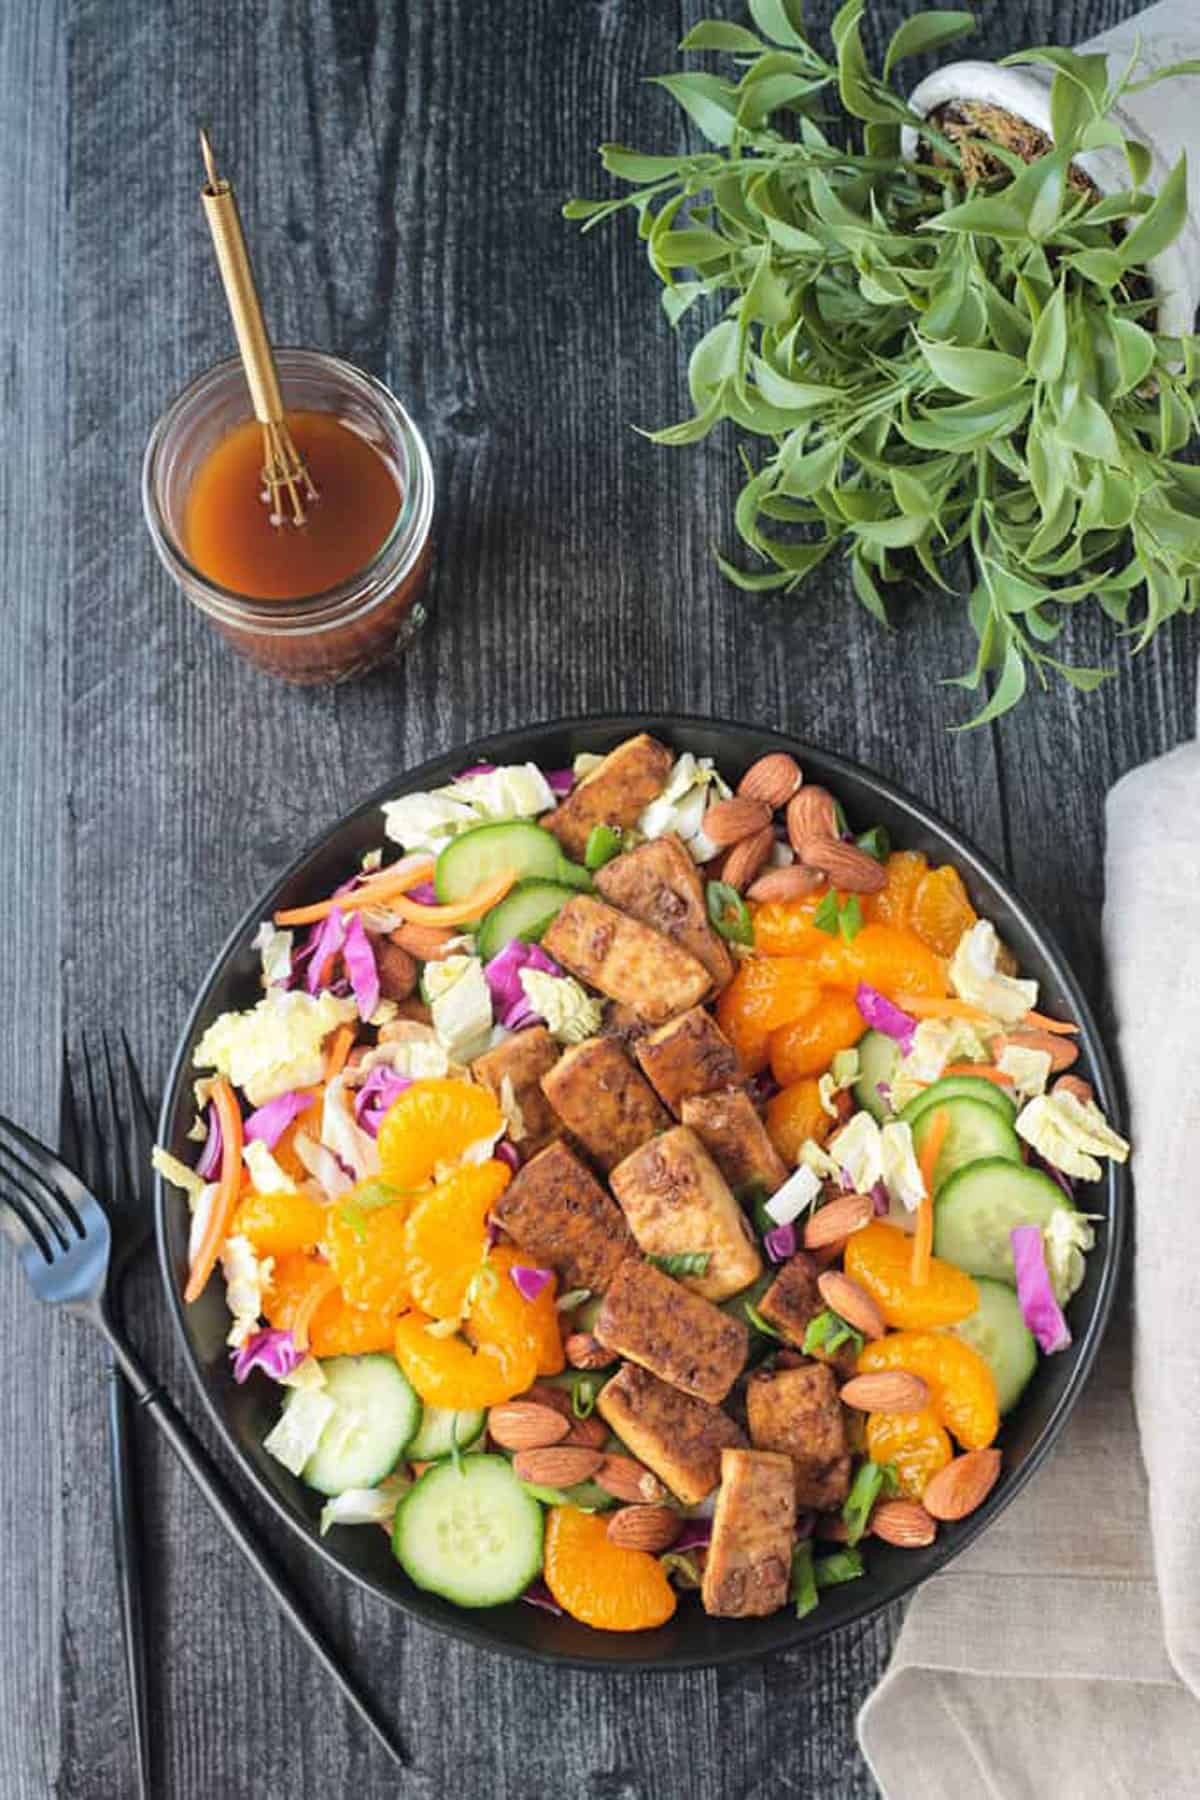 Salad w/ green and red cabbage, cucumbers, mandarin oranges, carrots, and baked tofu.